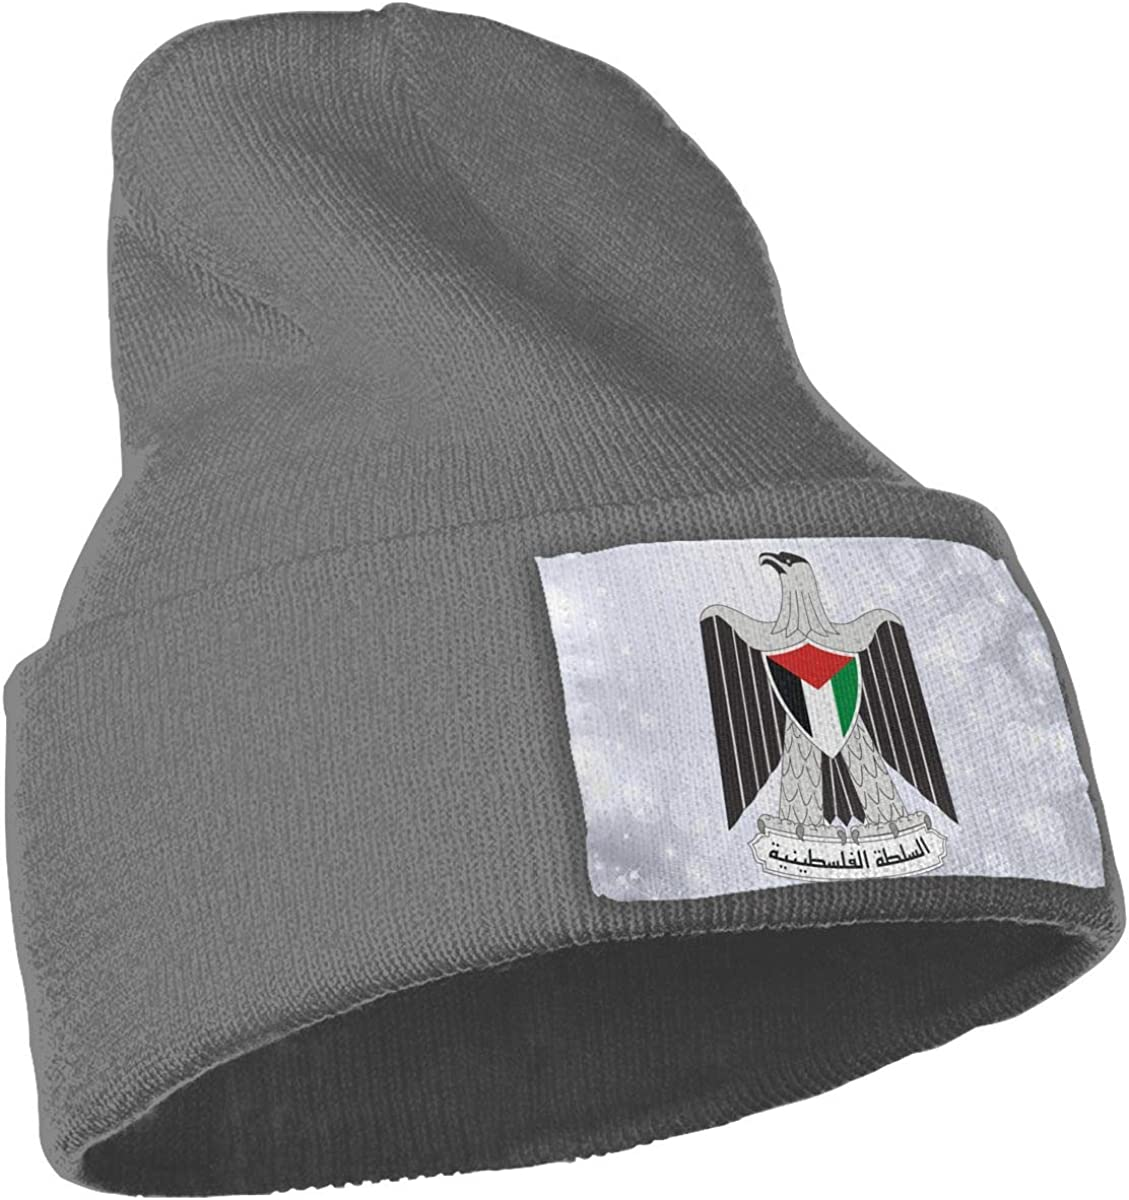 Coat of Arms of The Palestinian National Authority Hat for Men and Women Winter Warm Hats Knit Slouchy Thick Skull Cap